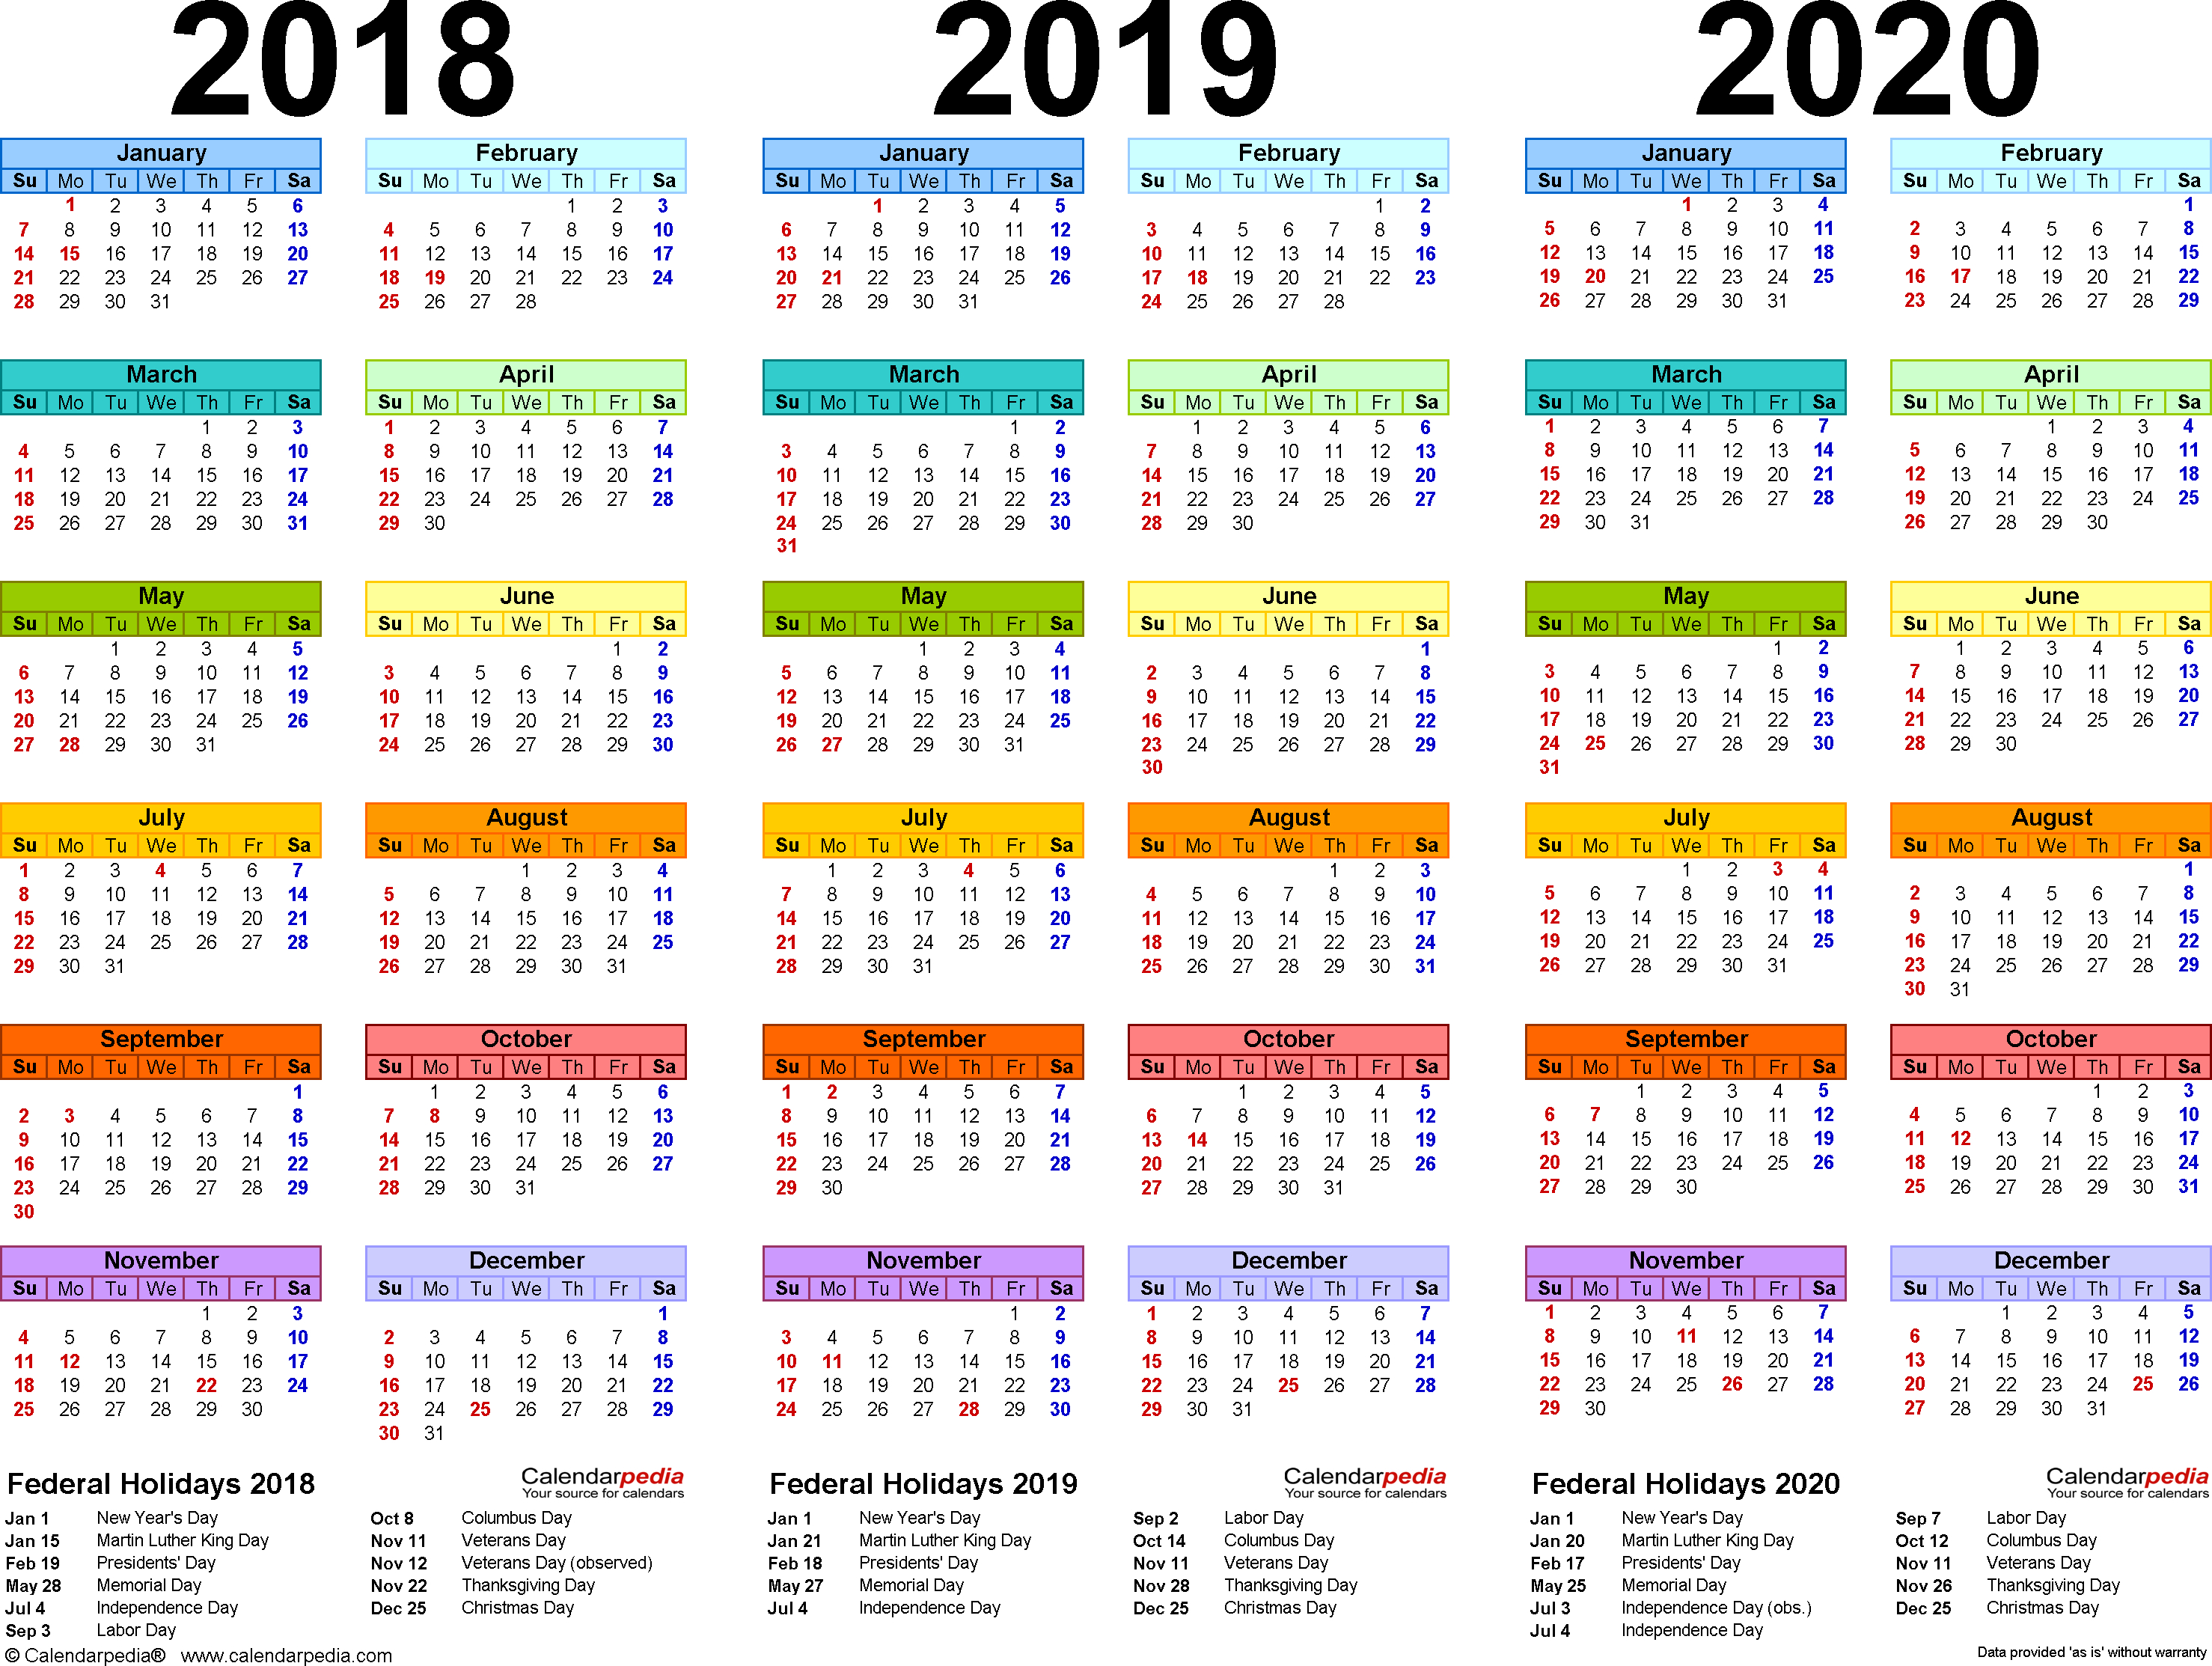 3 Year Planning Calendar - Erha.yasamayolver throughout Gant Chart Calendar Year In Weeks For 2020